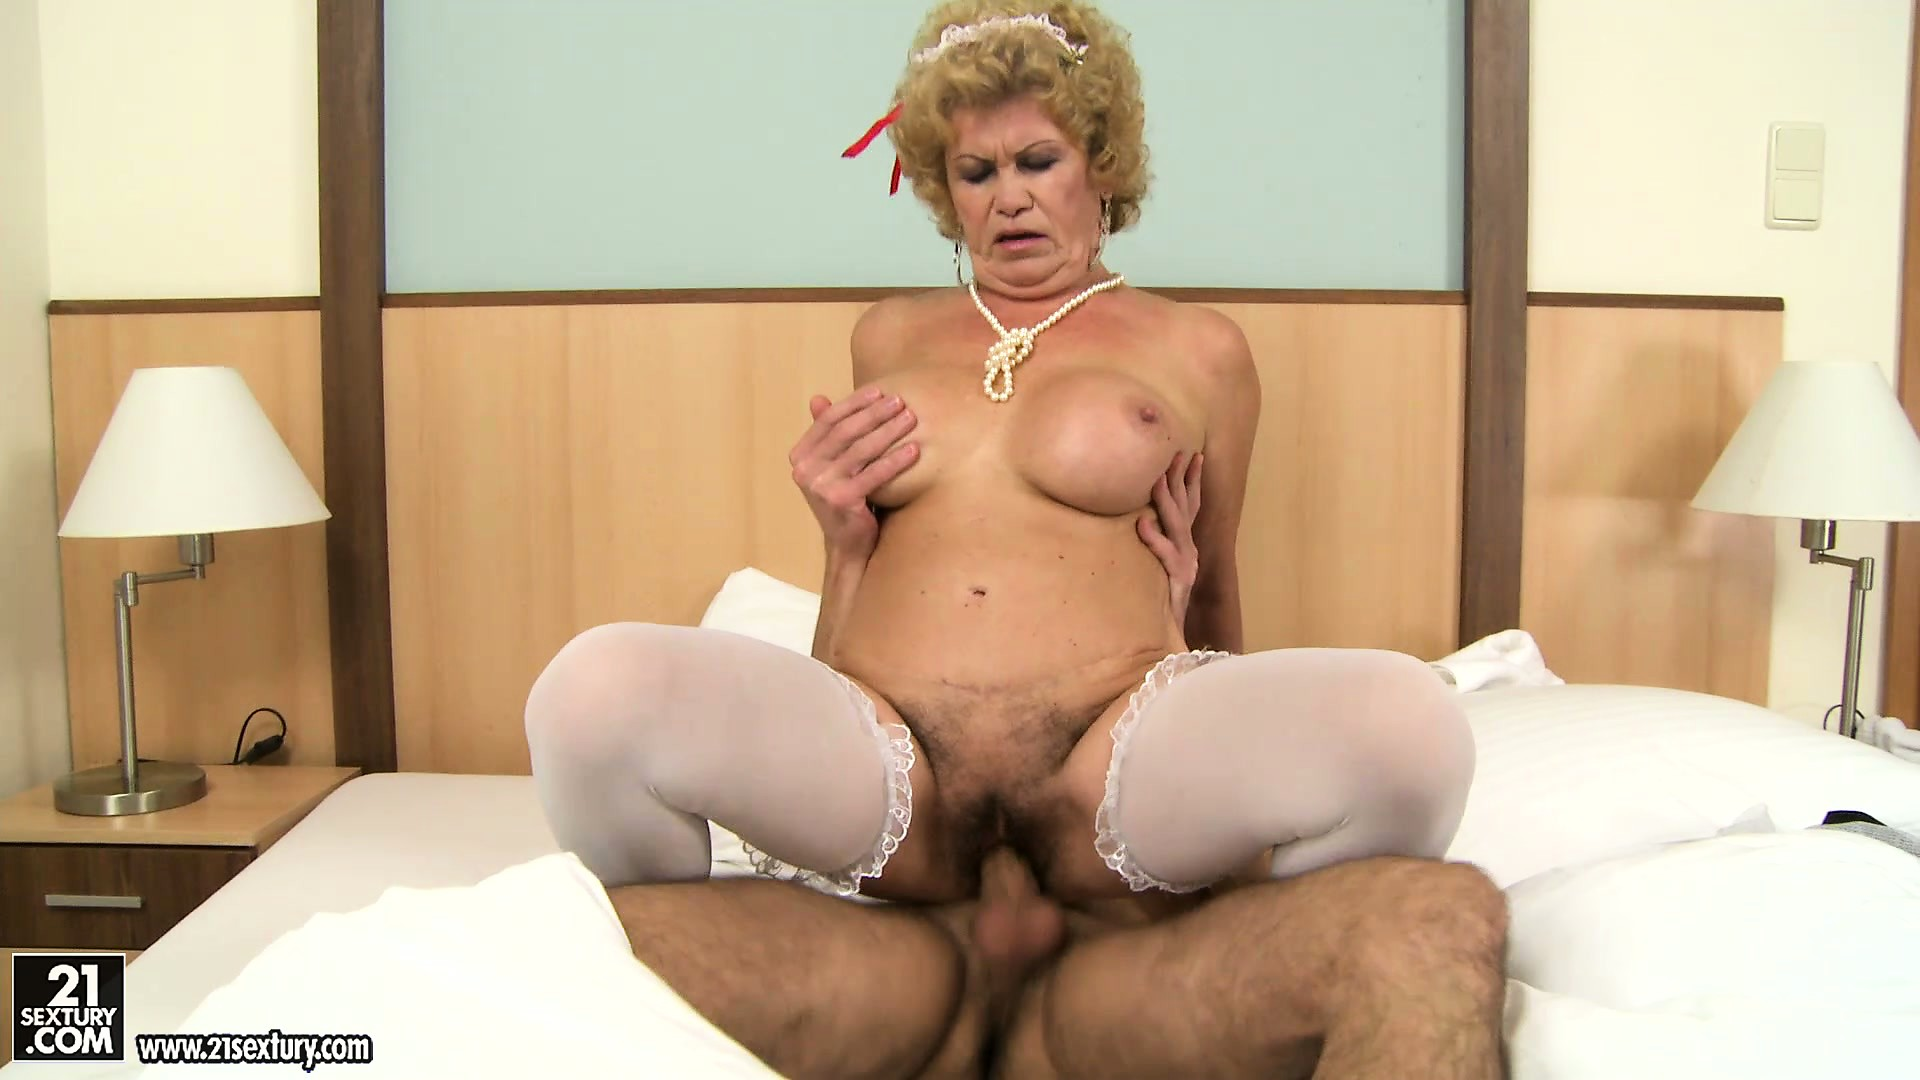 Porn Tube of The Hairy Goddess Is A Naughty Blonde Granny With A Mountain Of Fur On Her Twat